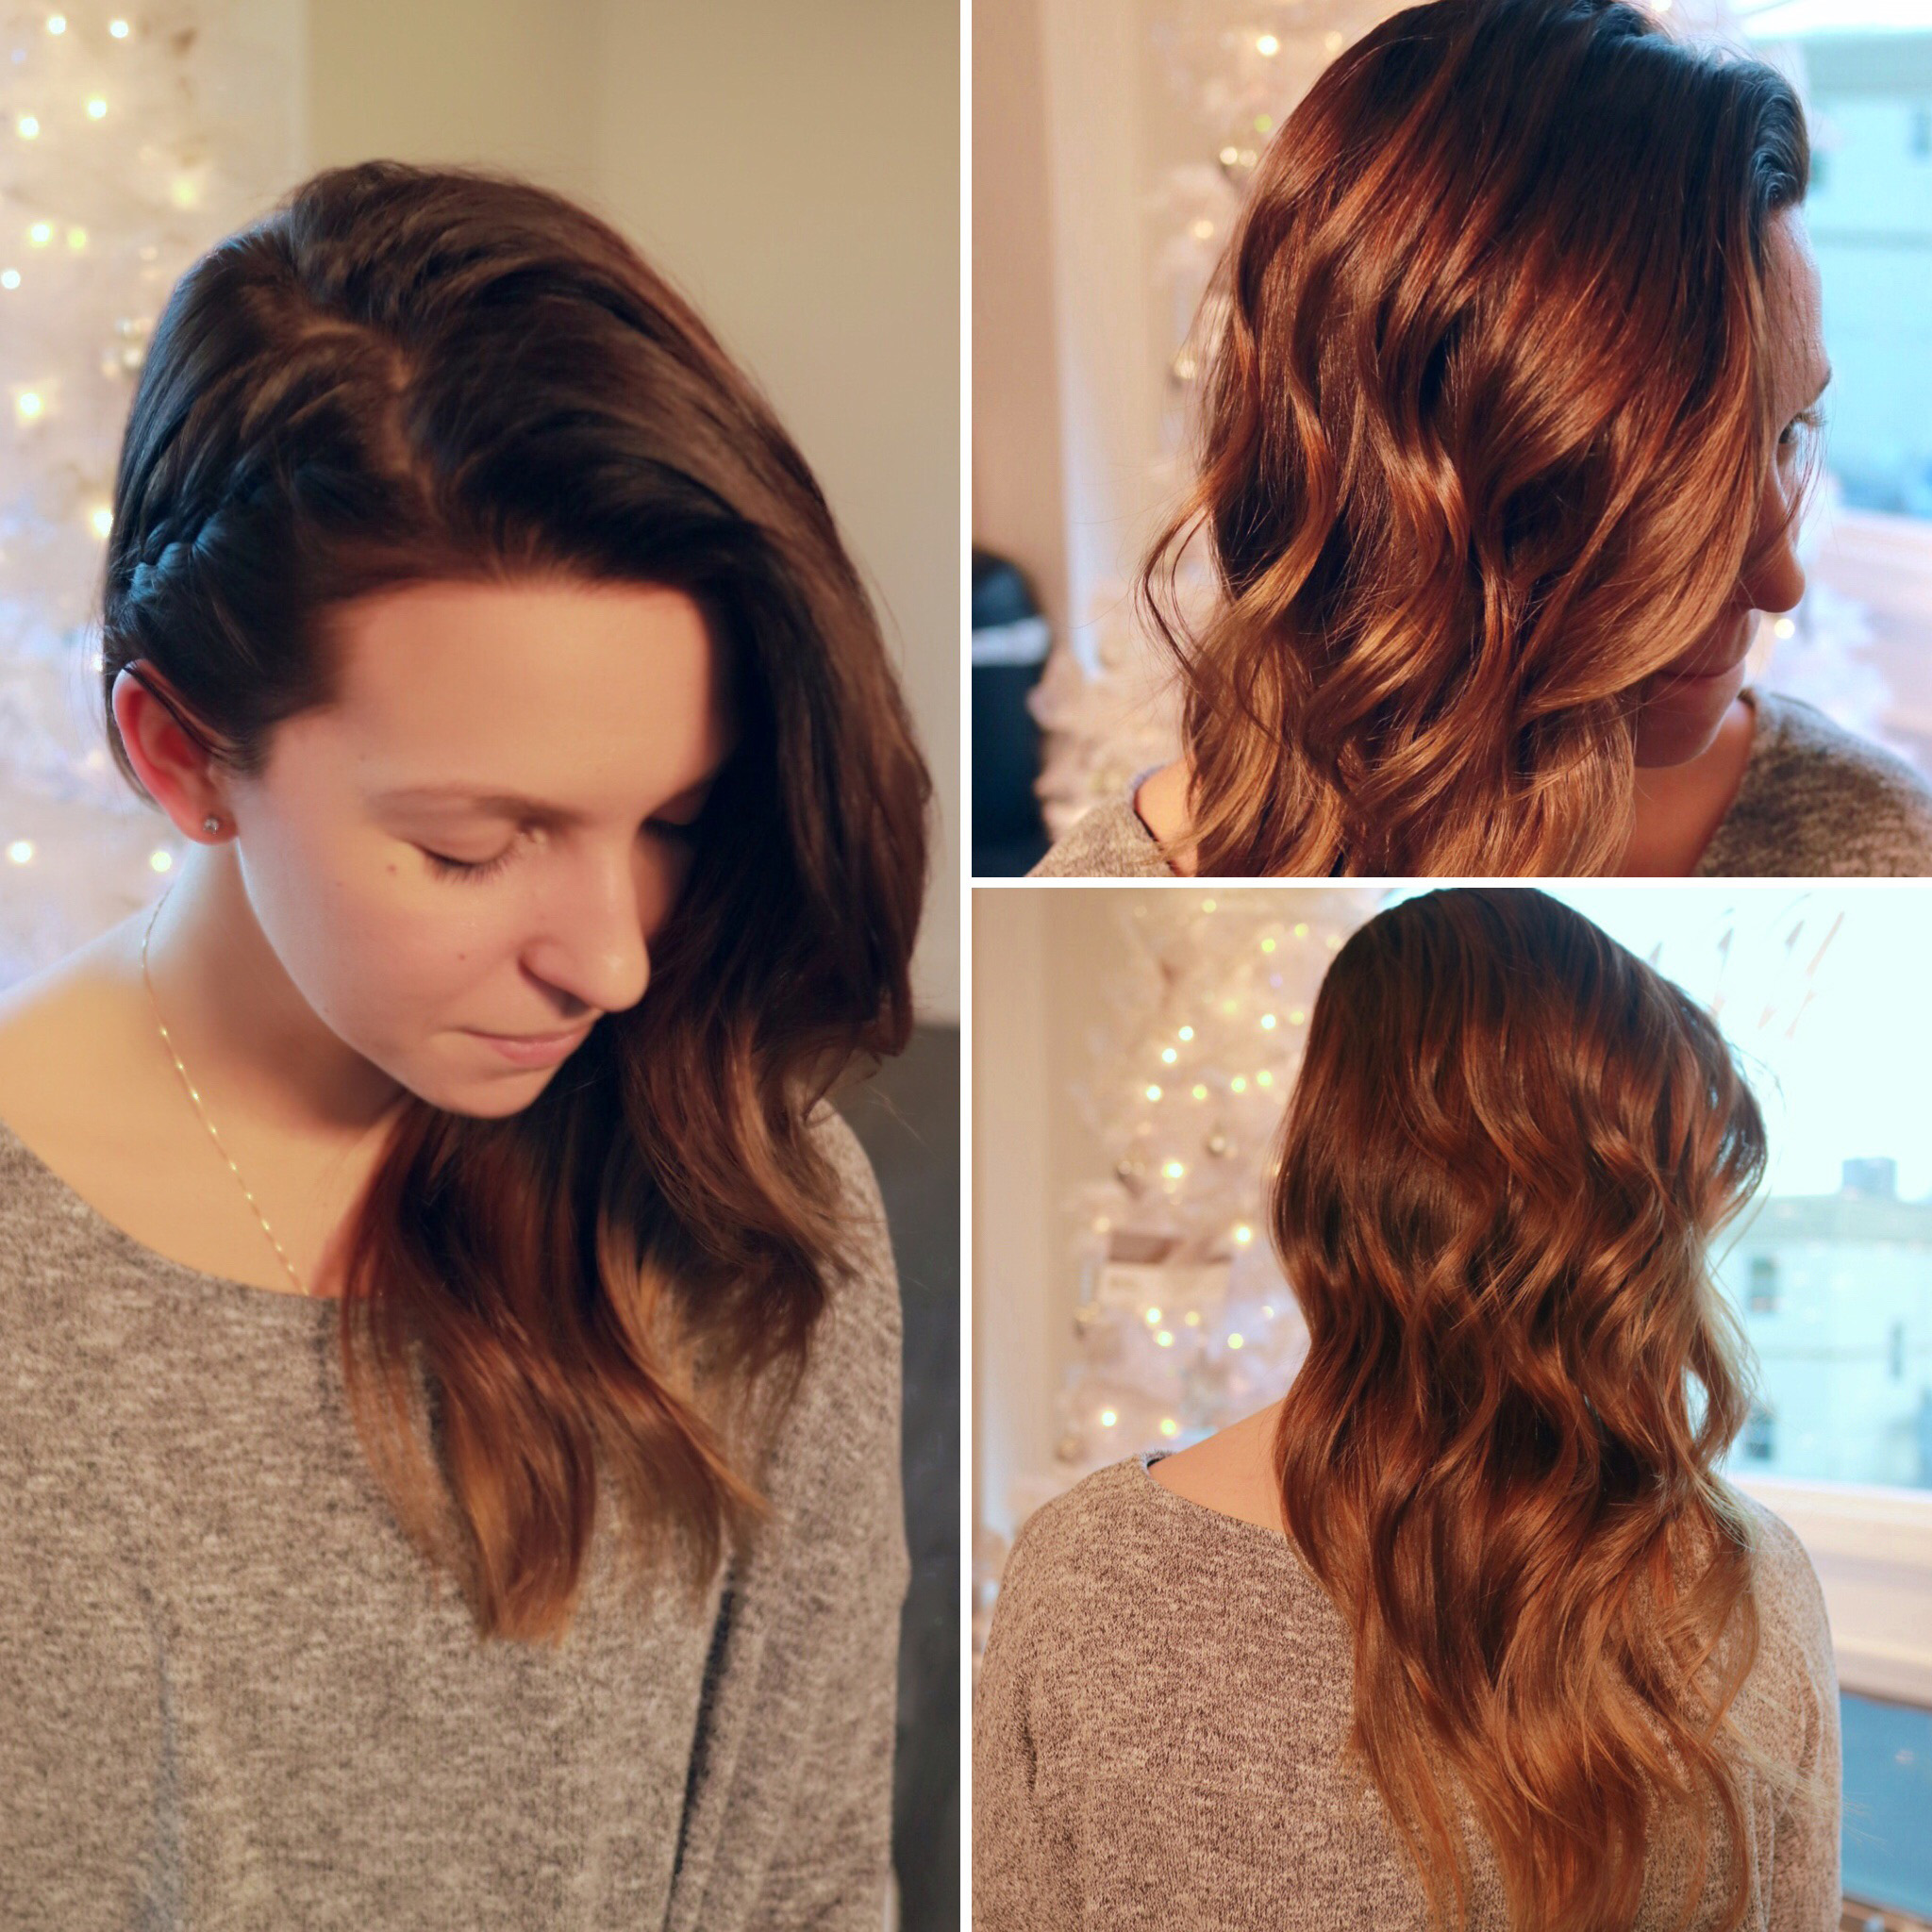 Beachy waves and braid are everything you need for Christmas at the Jersey Shore | Styled by Katelynn